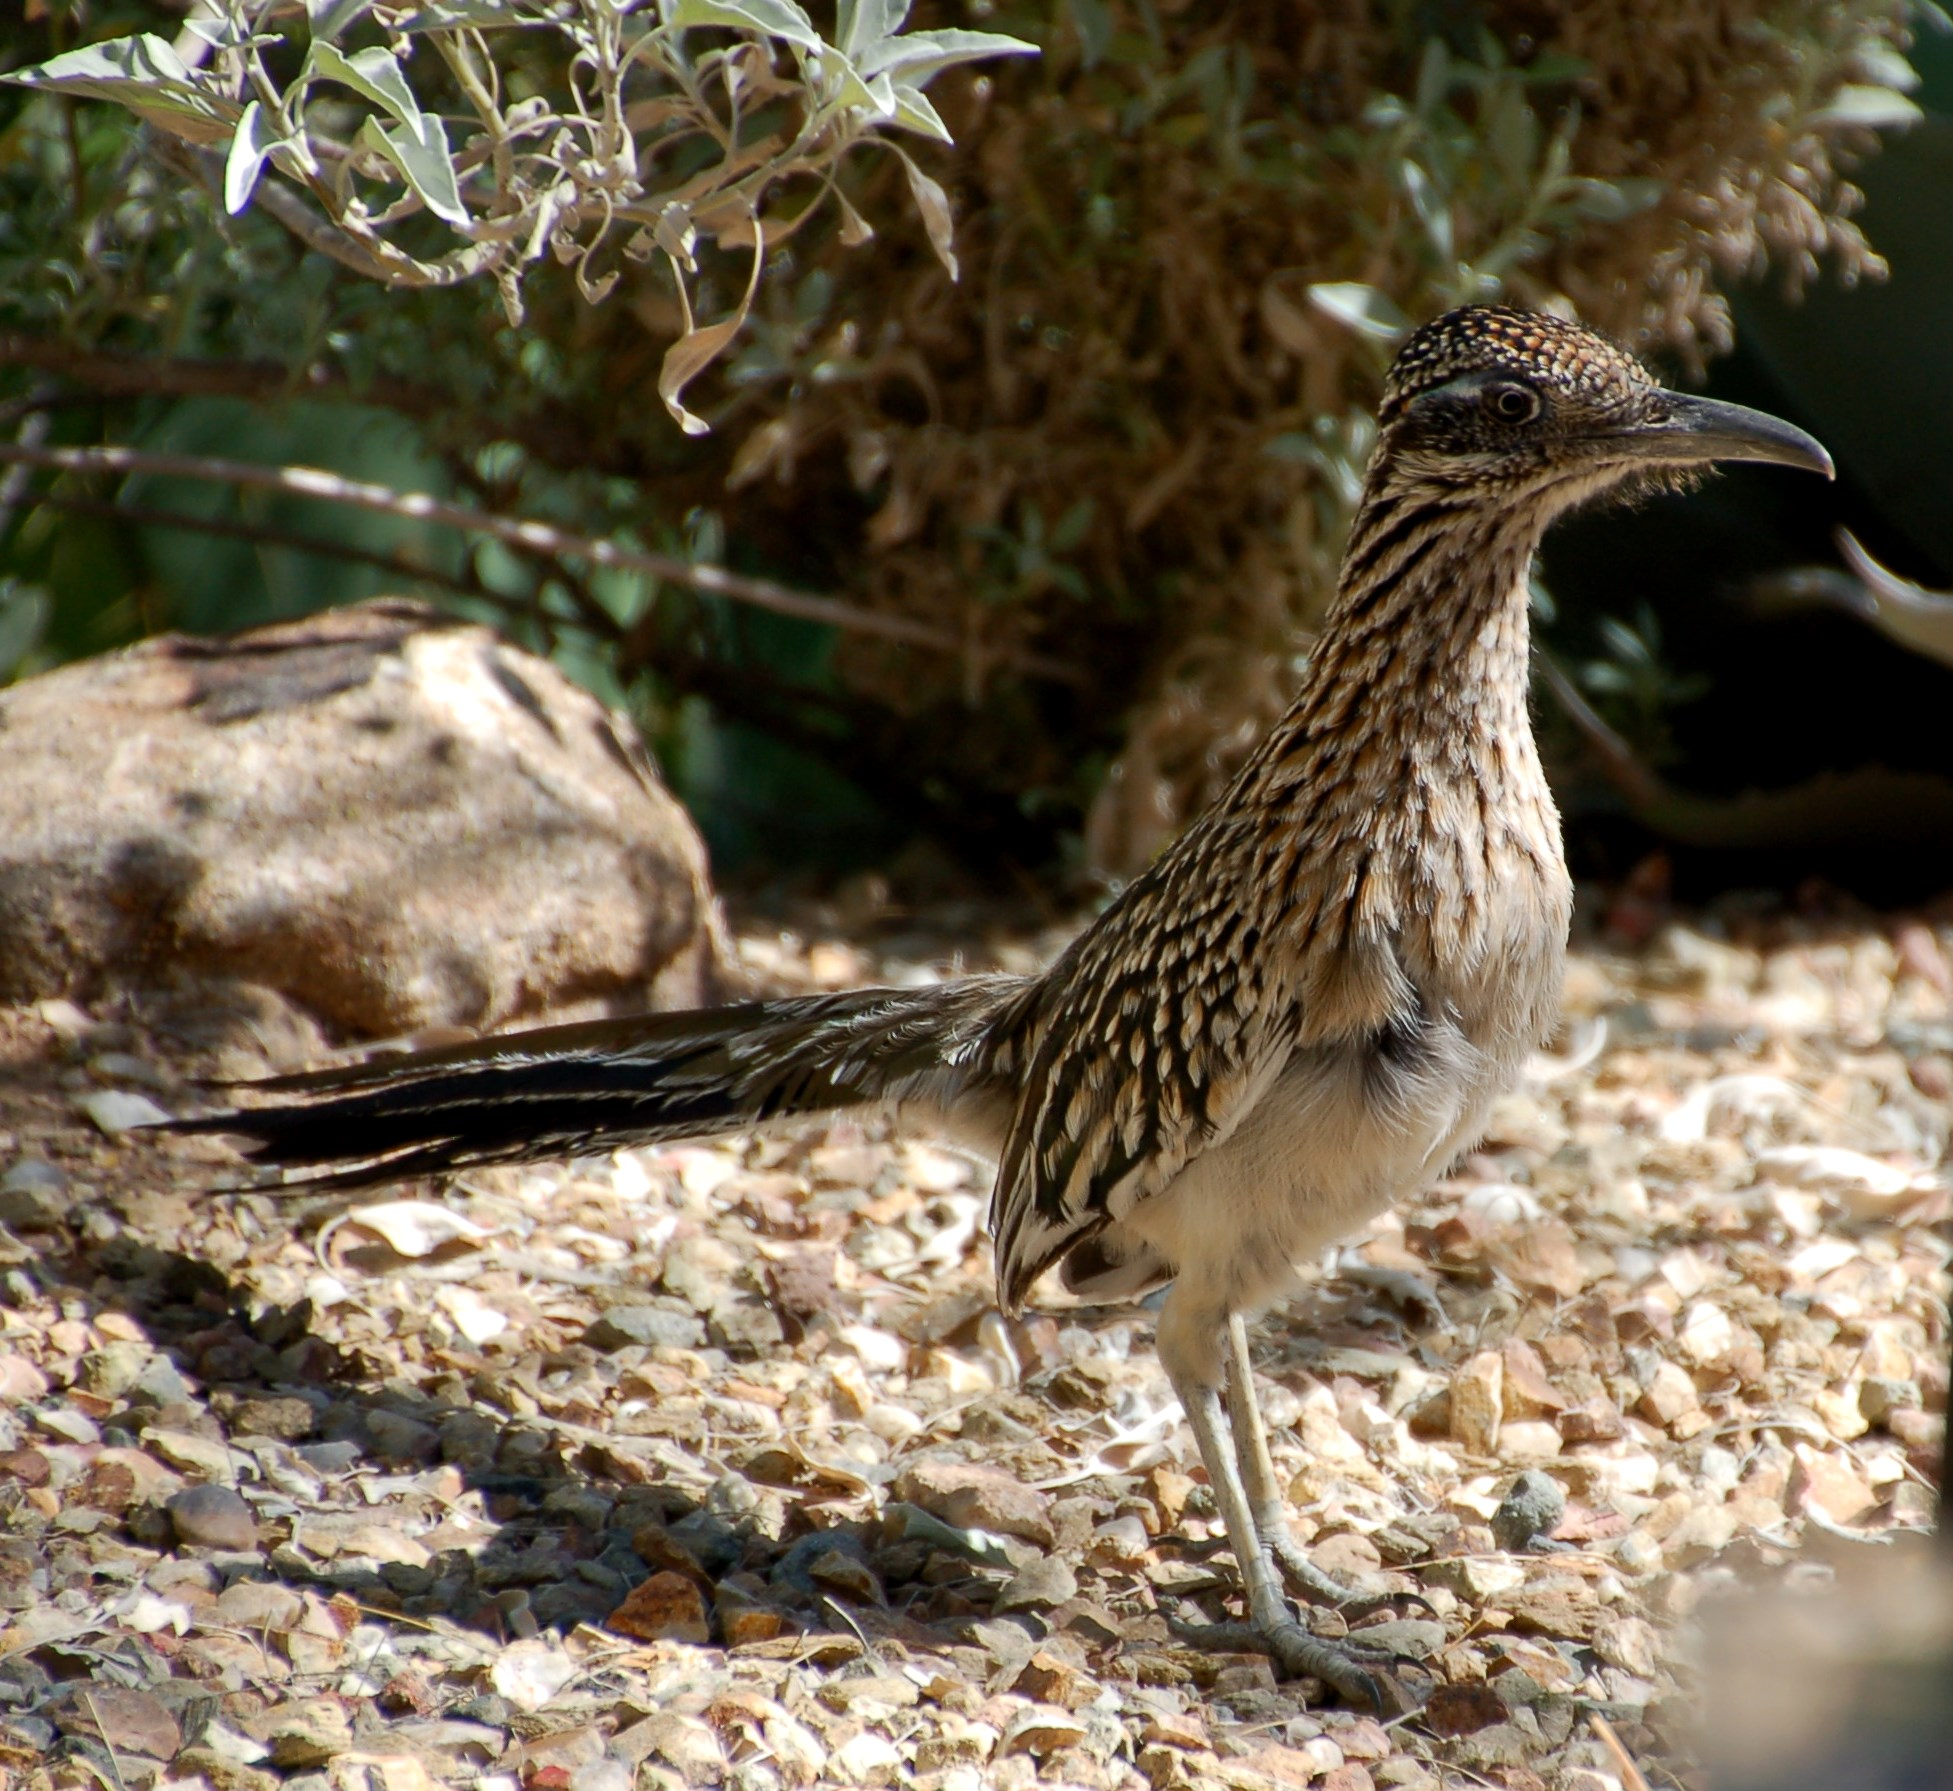 A visit from the tourist friendly Roadrunner at Gertrude's restaurant